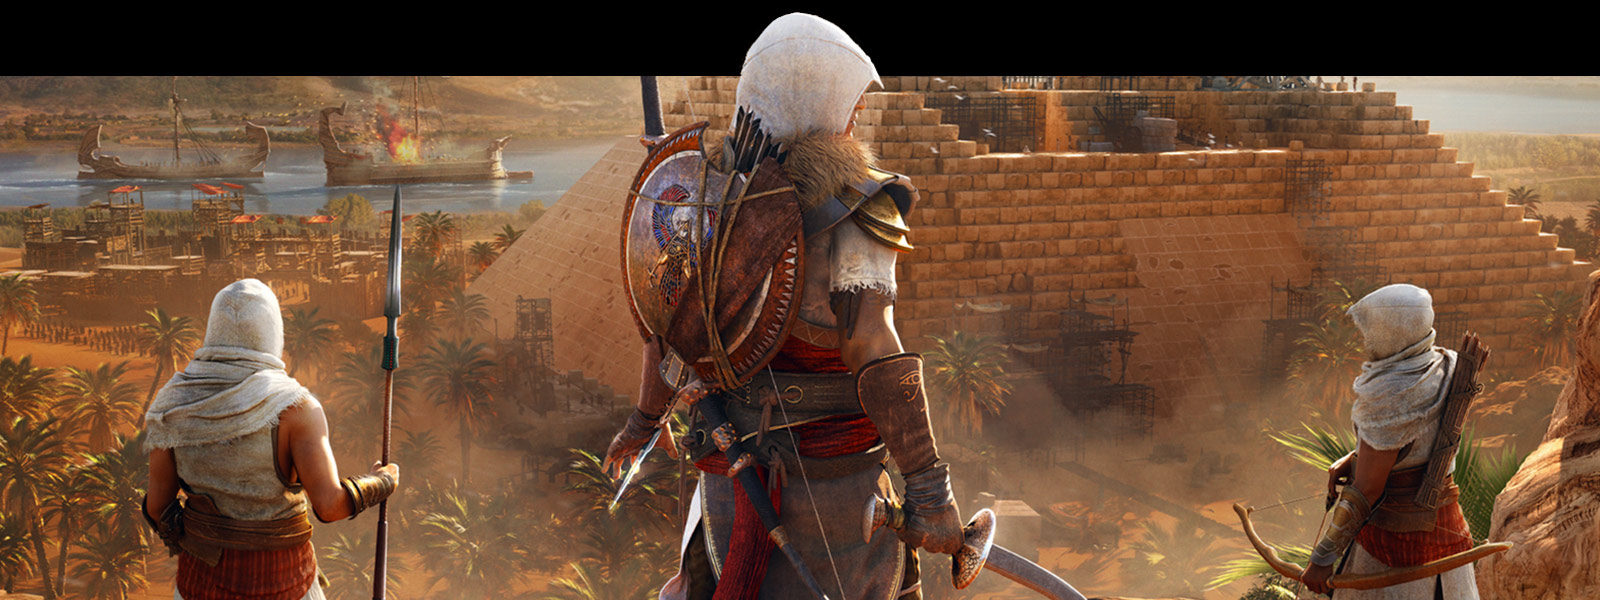 Back view of Bayek and two other assassin's standing in front of a pyramid